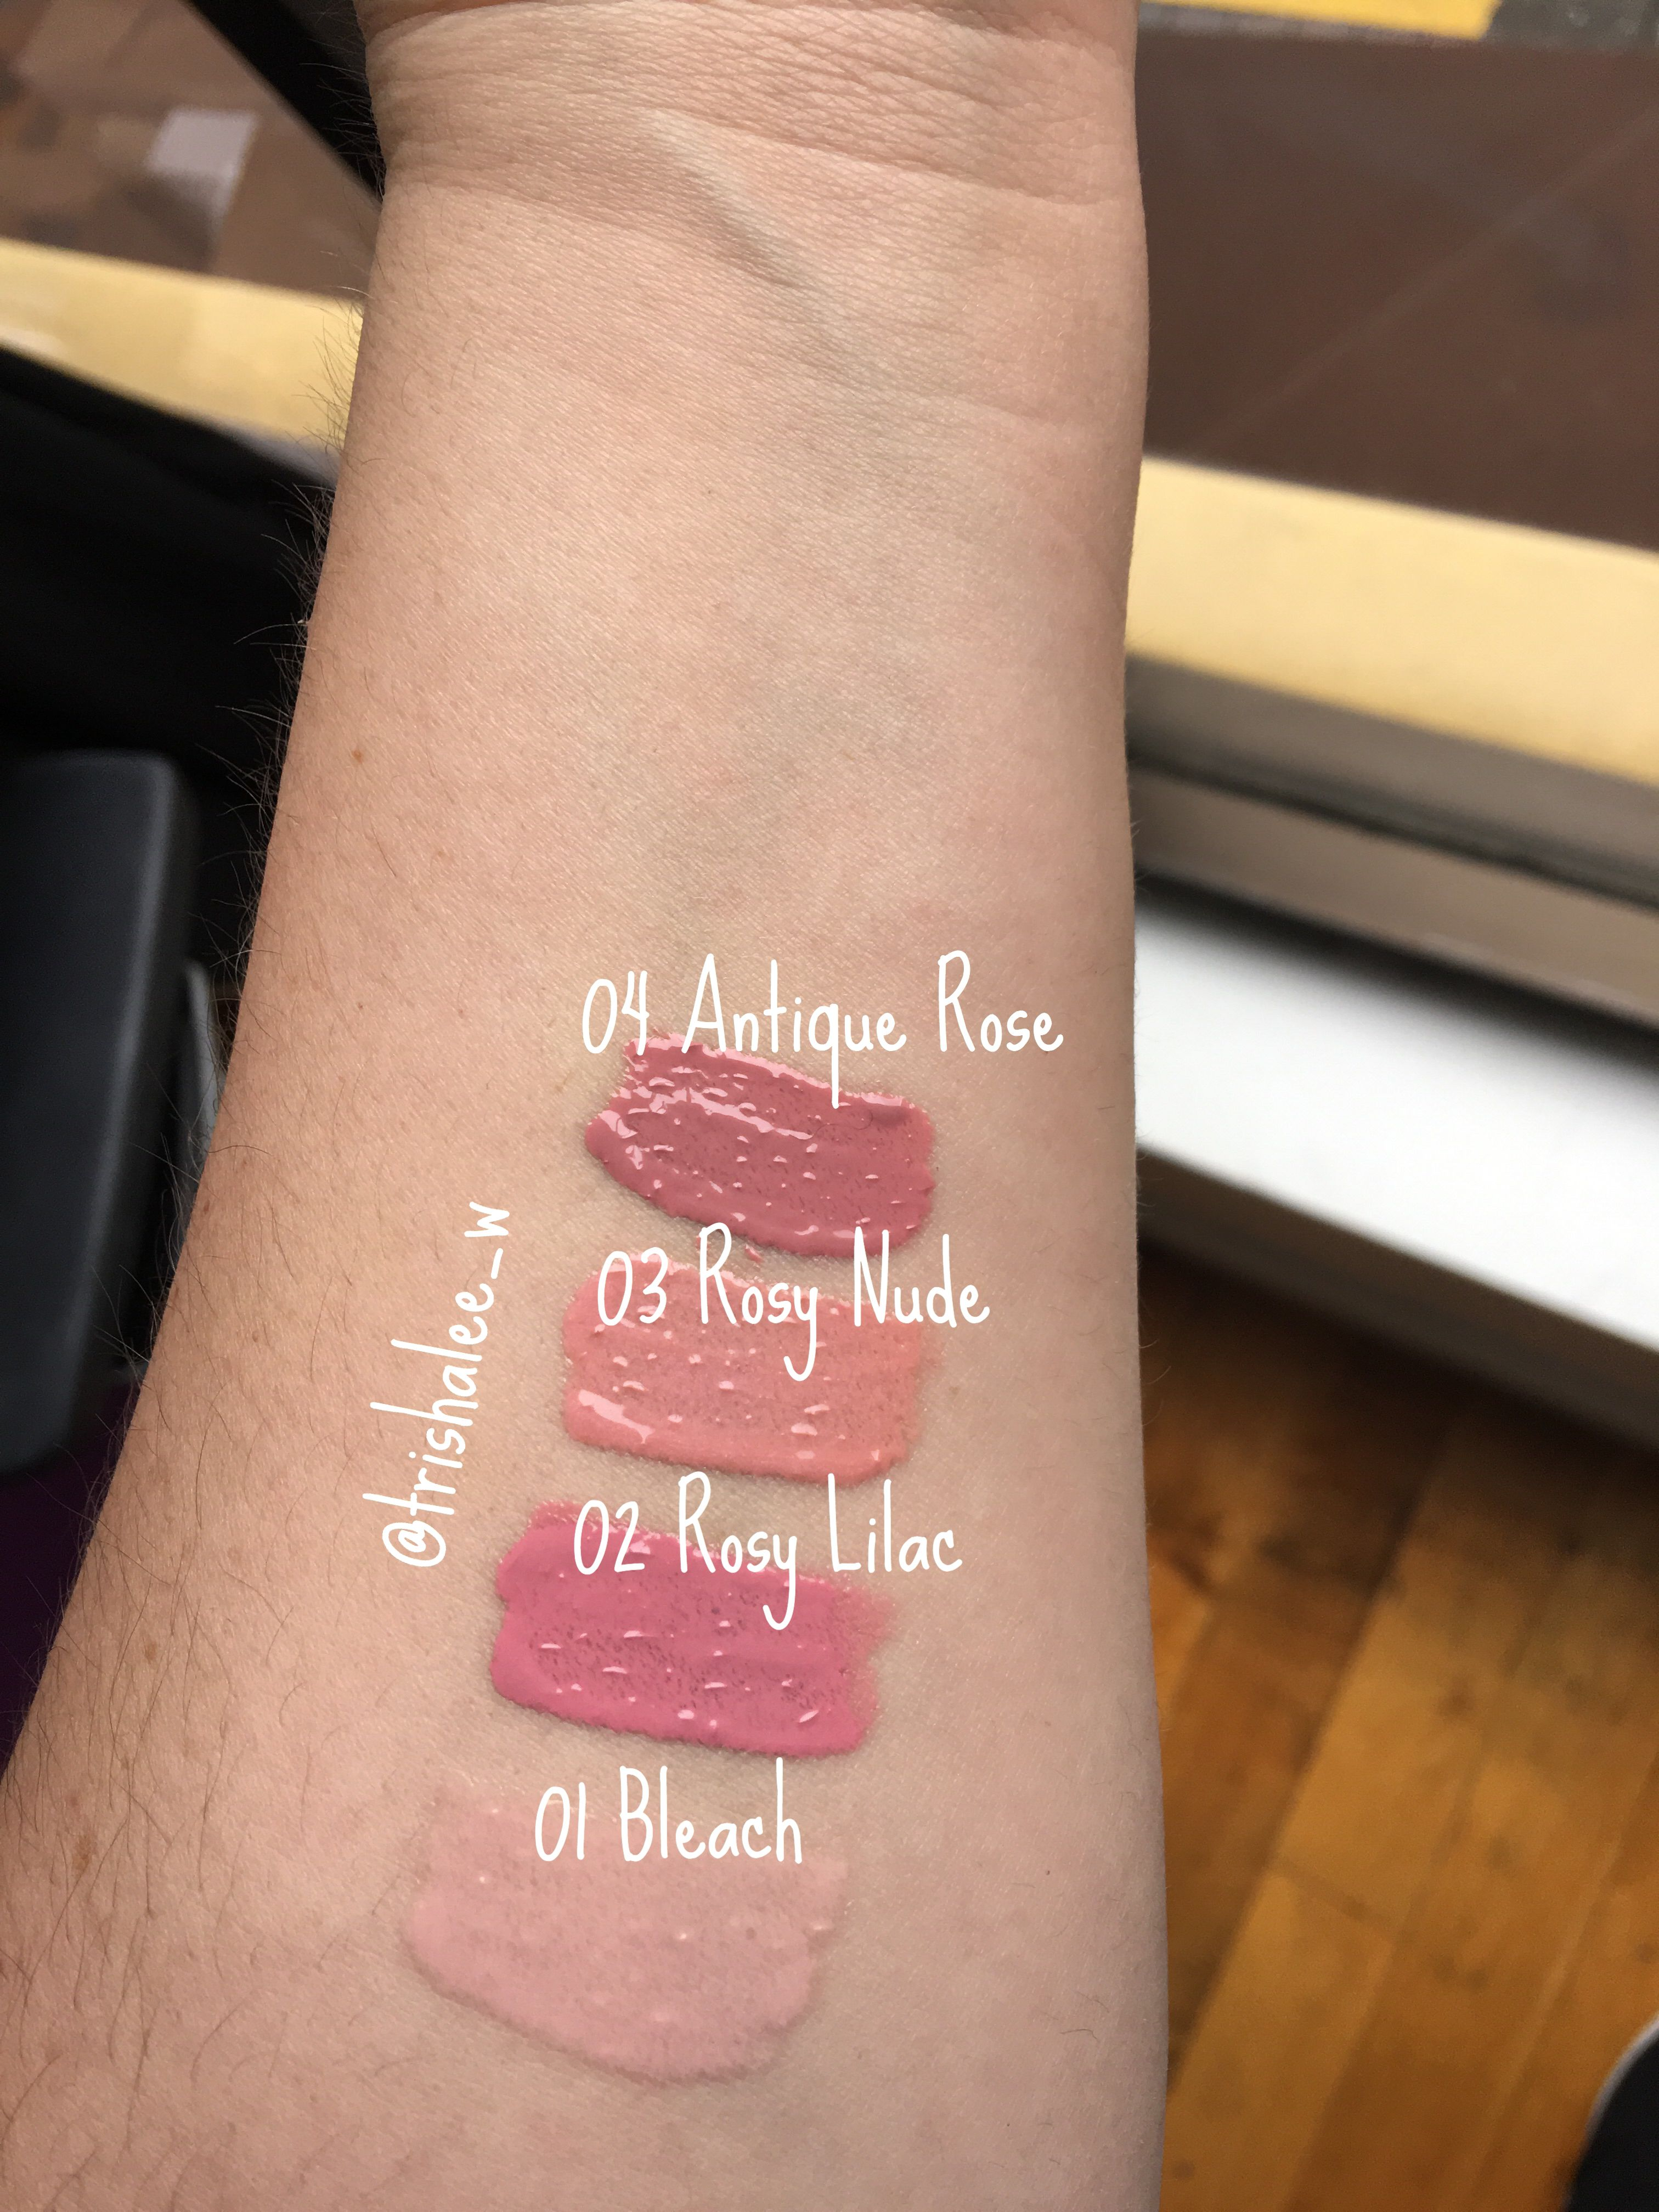 Elle 18 lipstick shades swatches